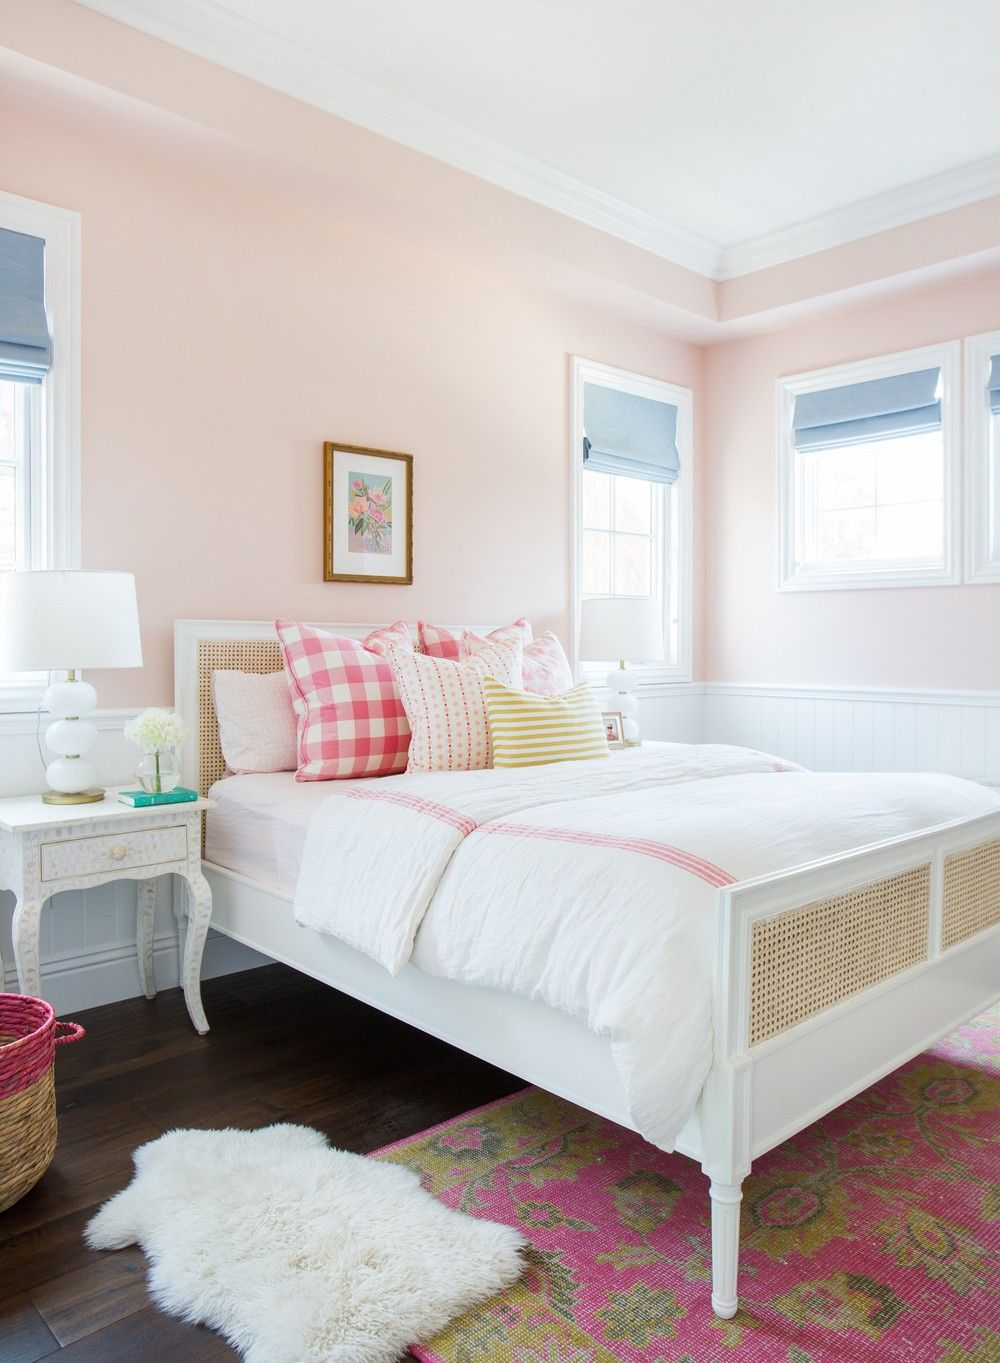 S Bedroom Paintings Pacific Palisades Project Little Guest Rooms Studio Mcgee Ideas 27s Room Painted Benjamin Moore 22love 26 Hiness 22 7c